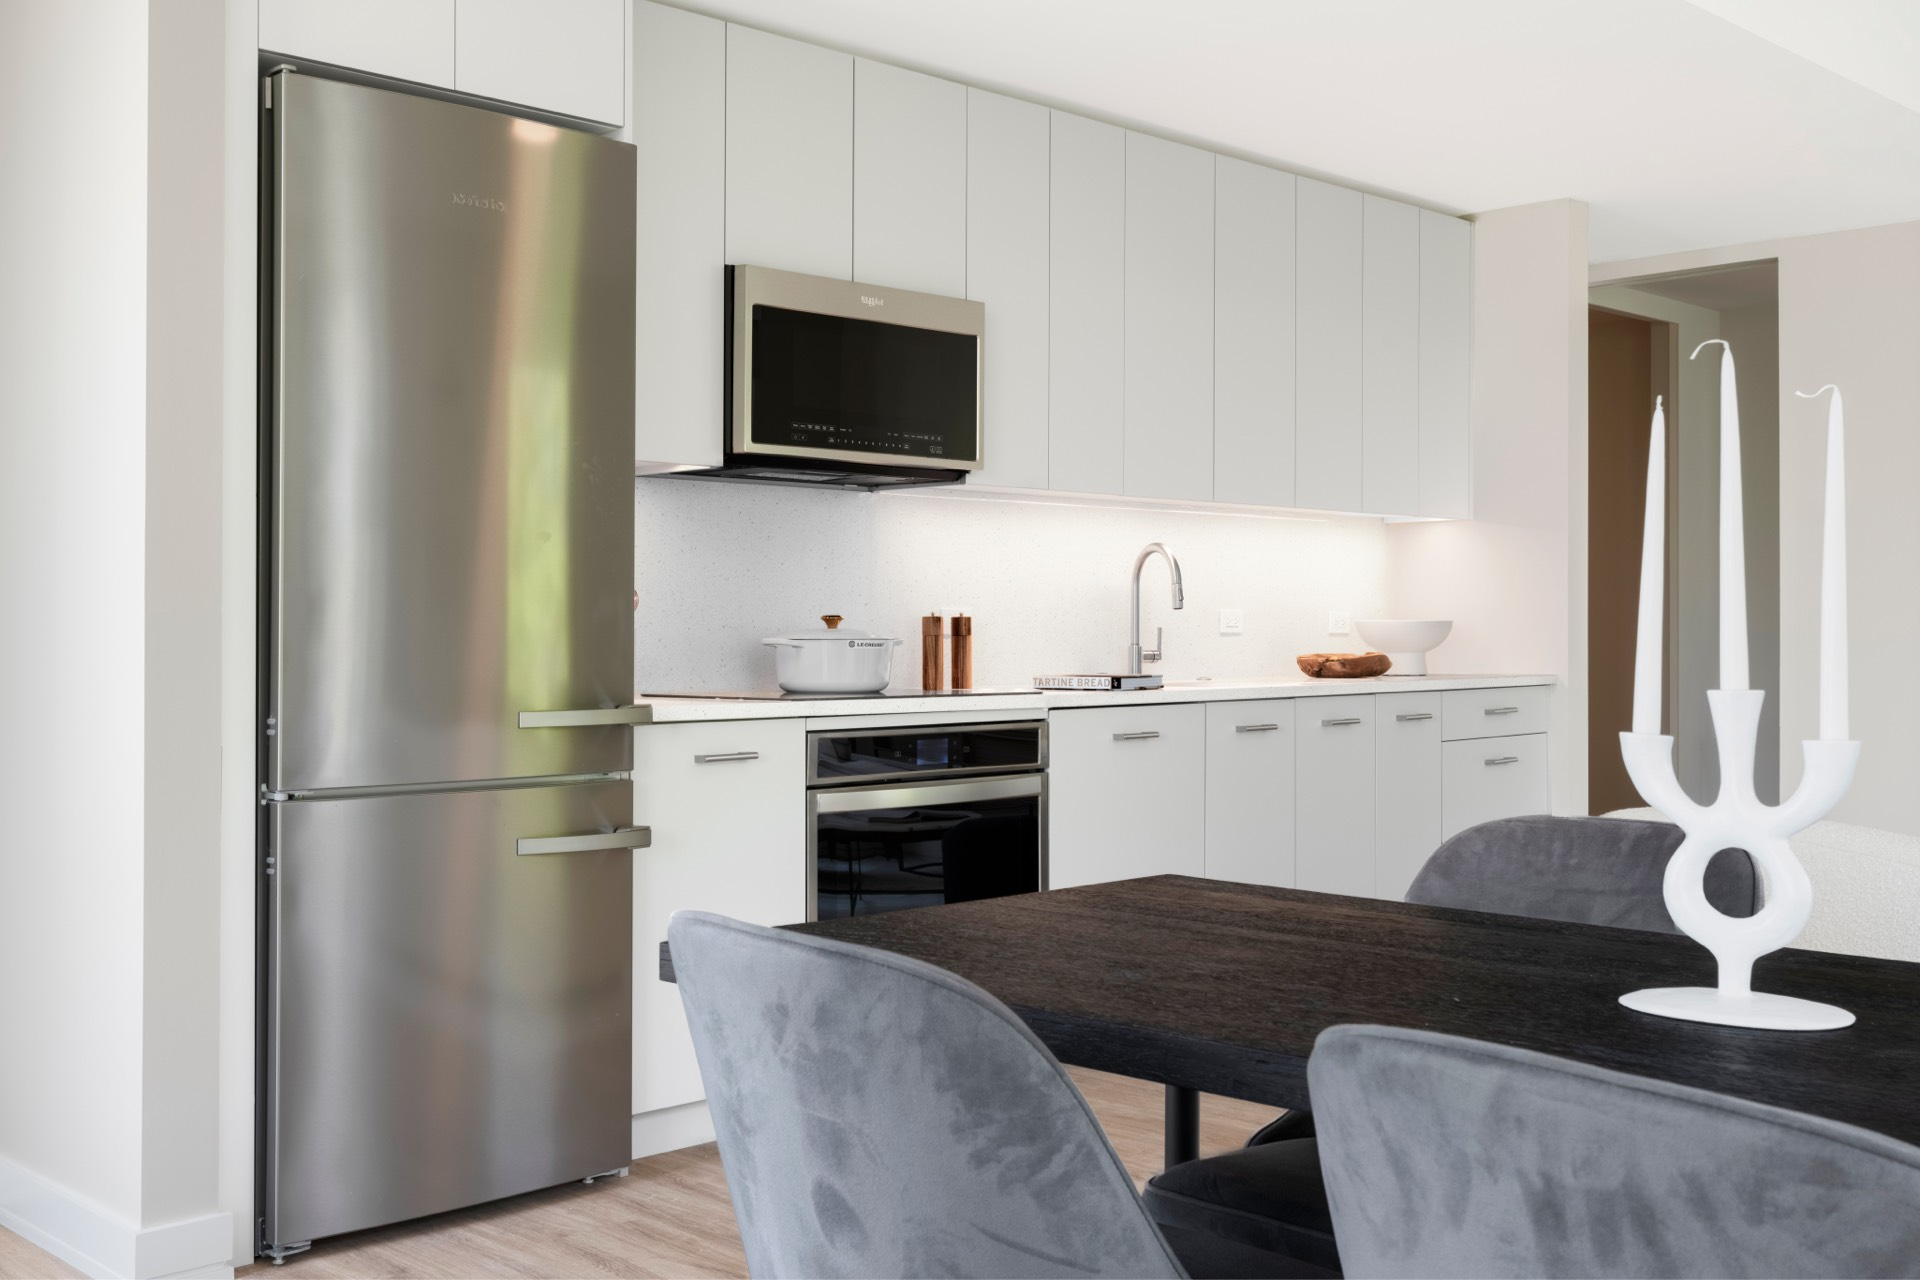 Generously-sized apartments with modern finishes